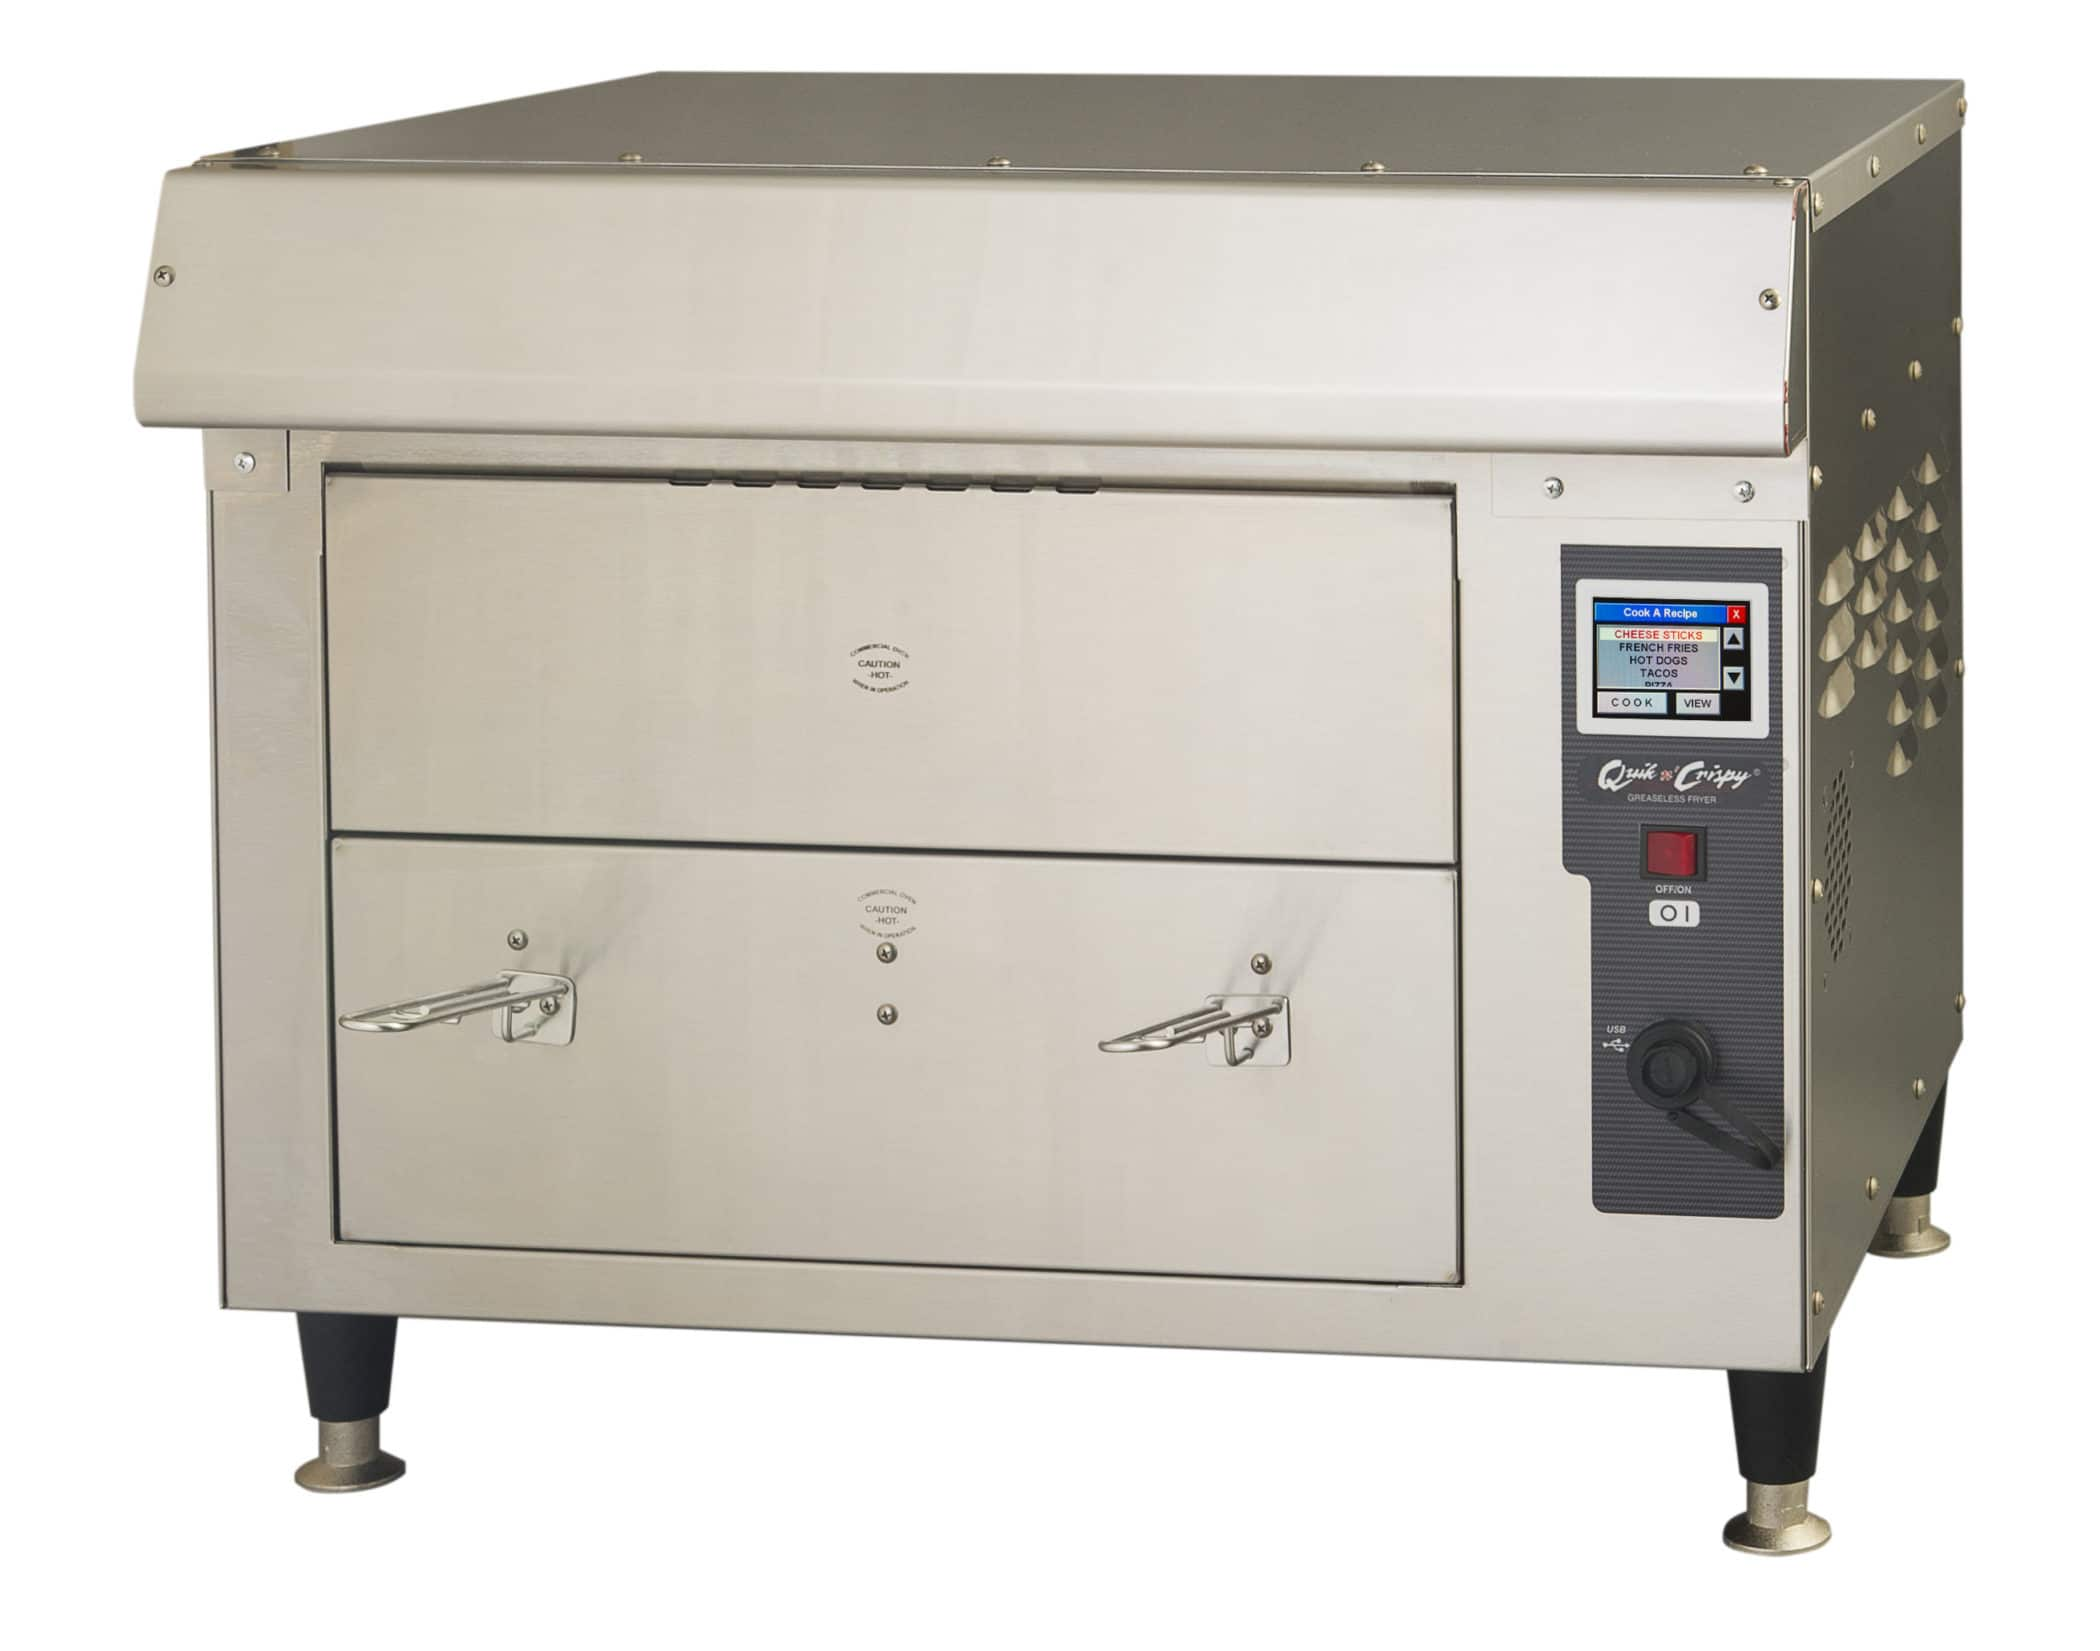 Color Led Display Ventless Fryers